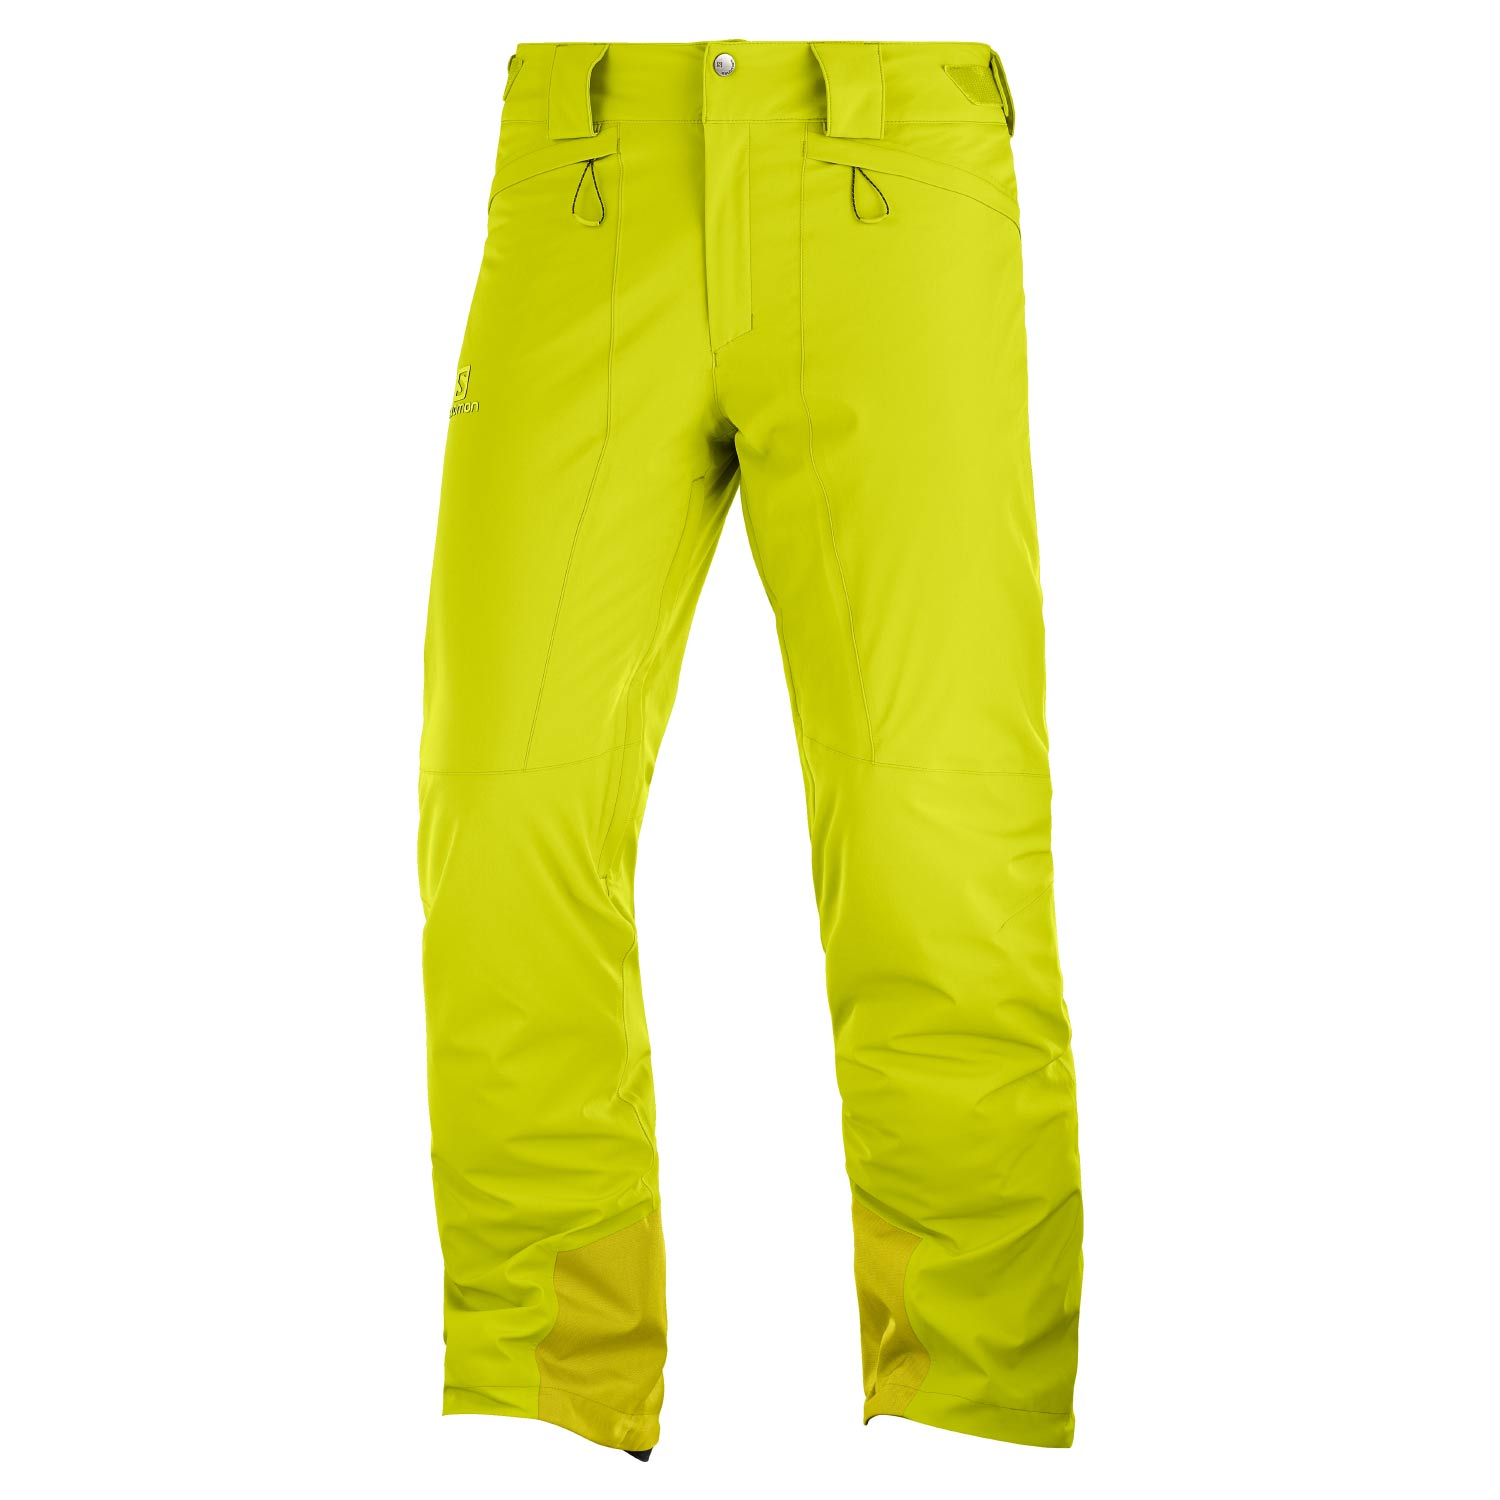 Salomon Icemania Pant Citronelle 2020